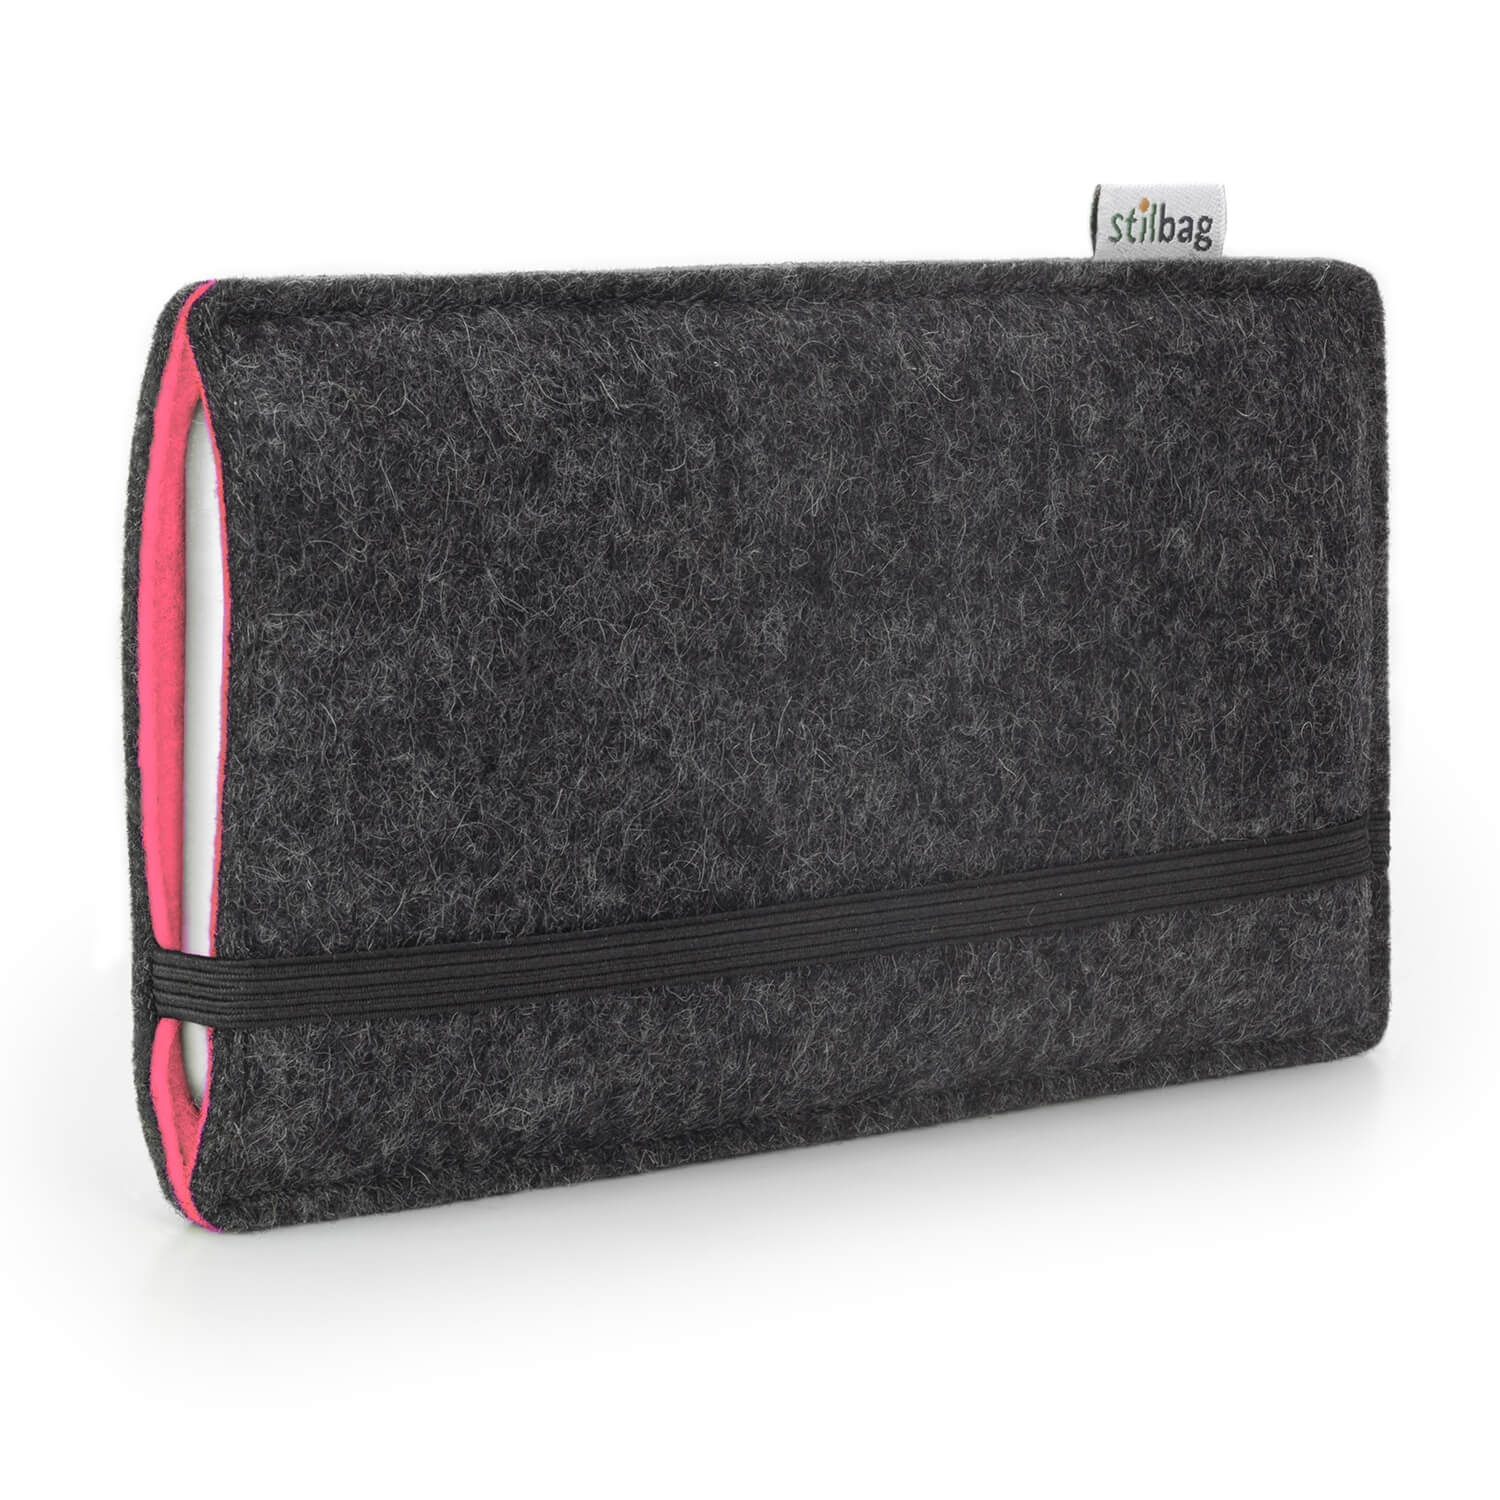 Stilbag-Feutre-Housse-FINN-mobile-Pochette-Etui-HTC-One-M8-ROUGE-COLL